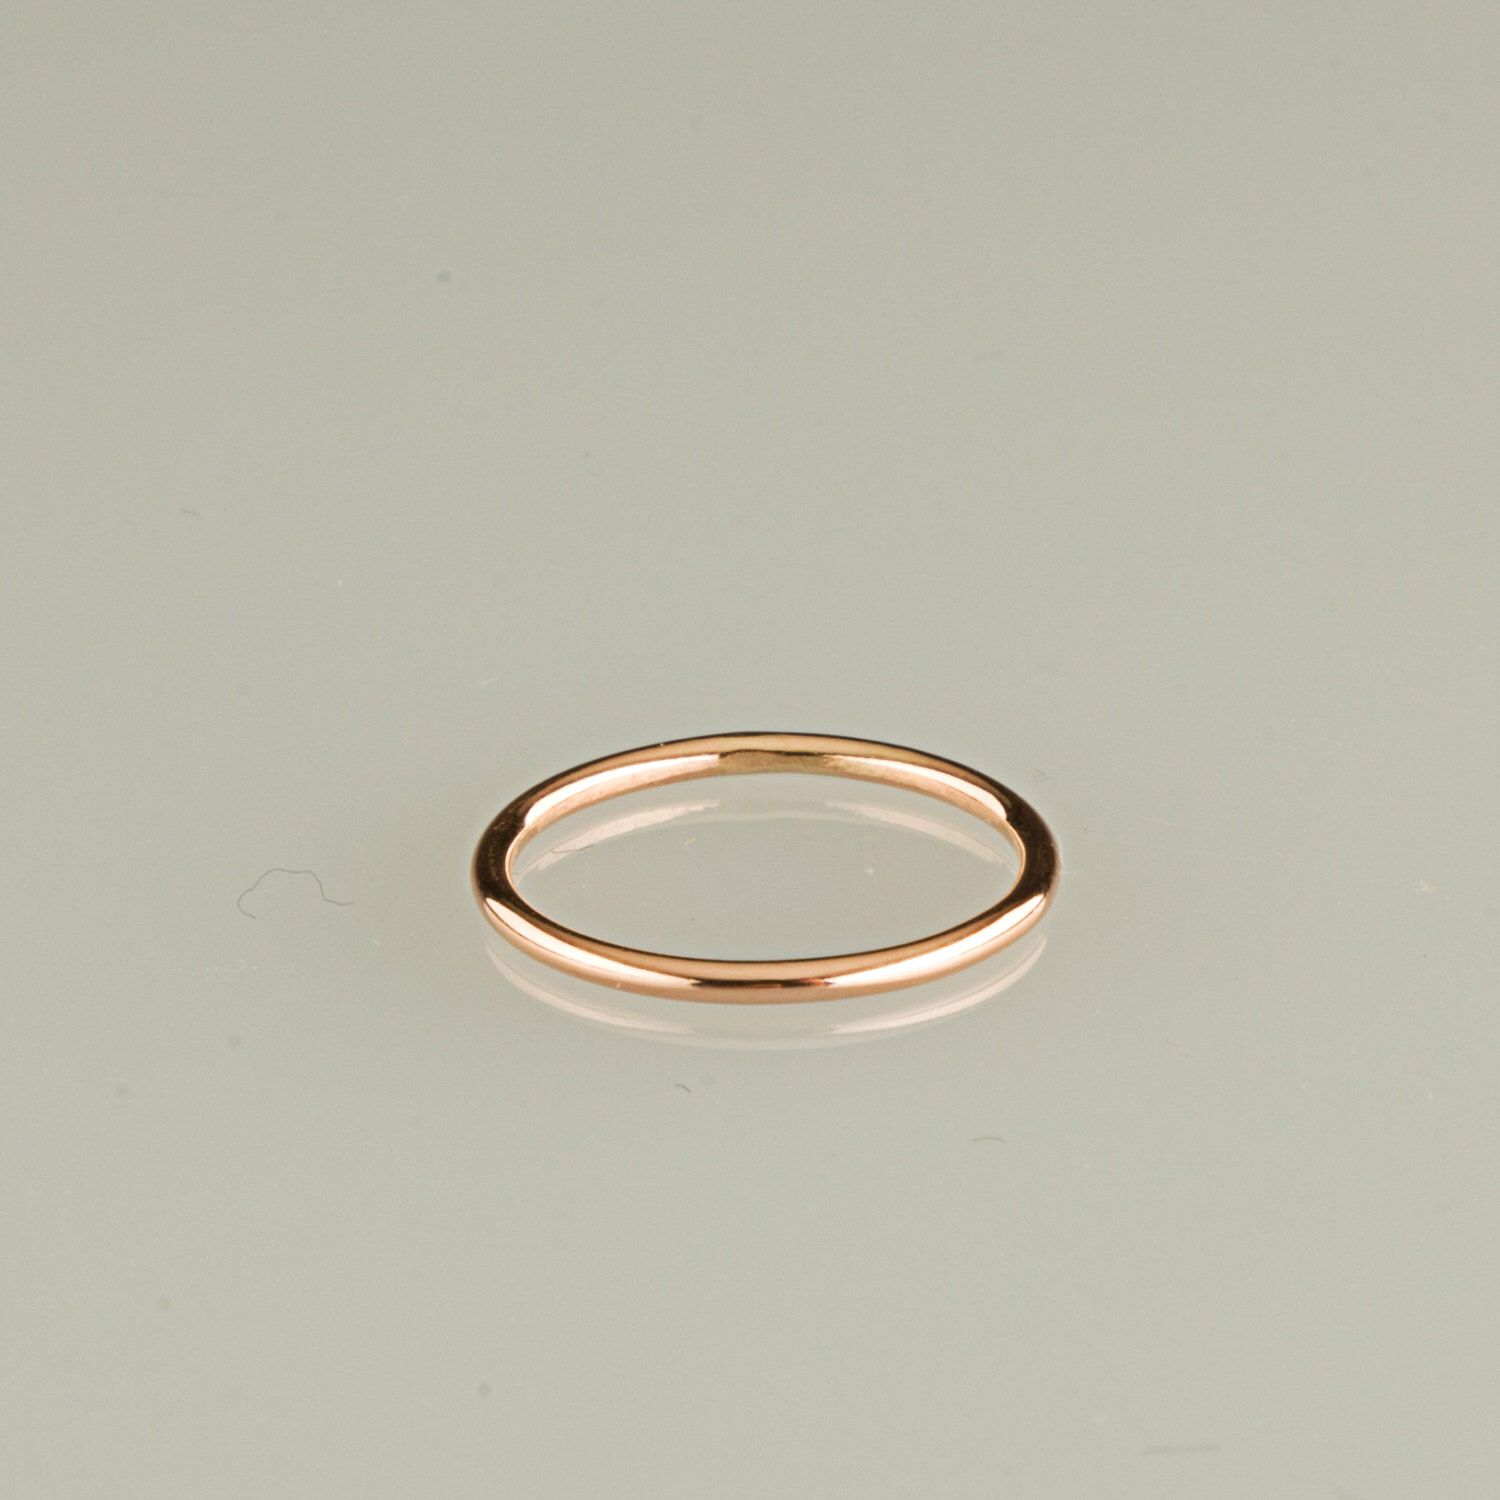 side want wedding bands another in would rose gold band the love one other for but thin pin